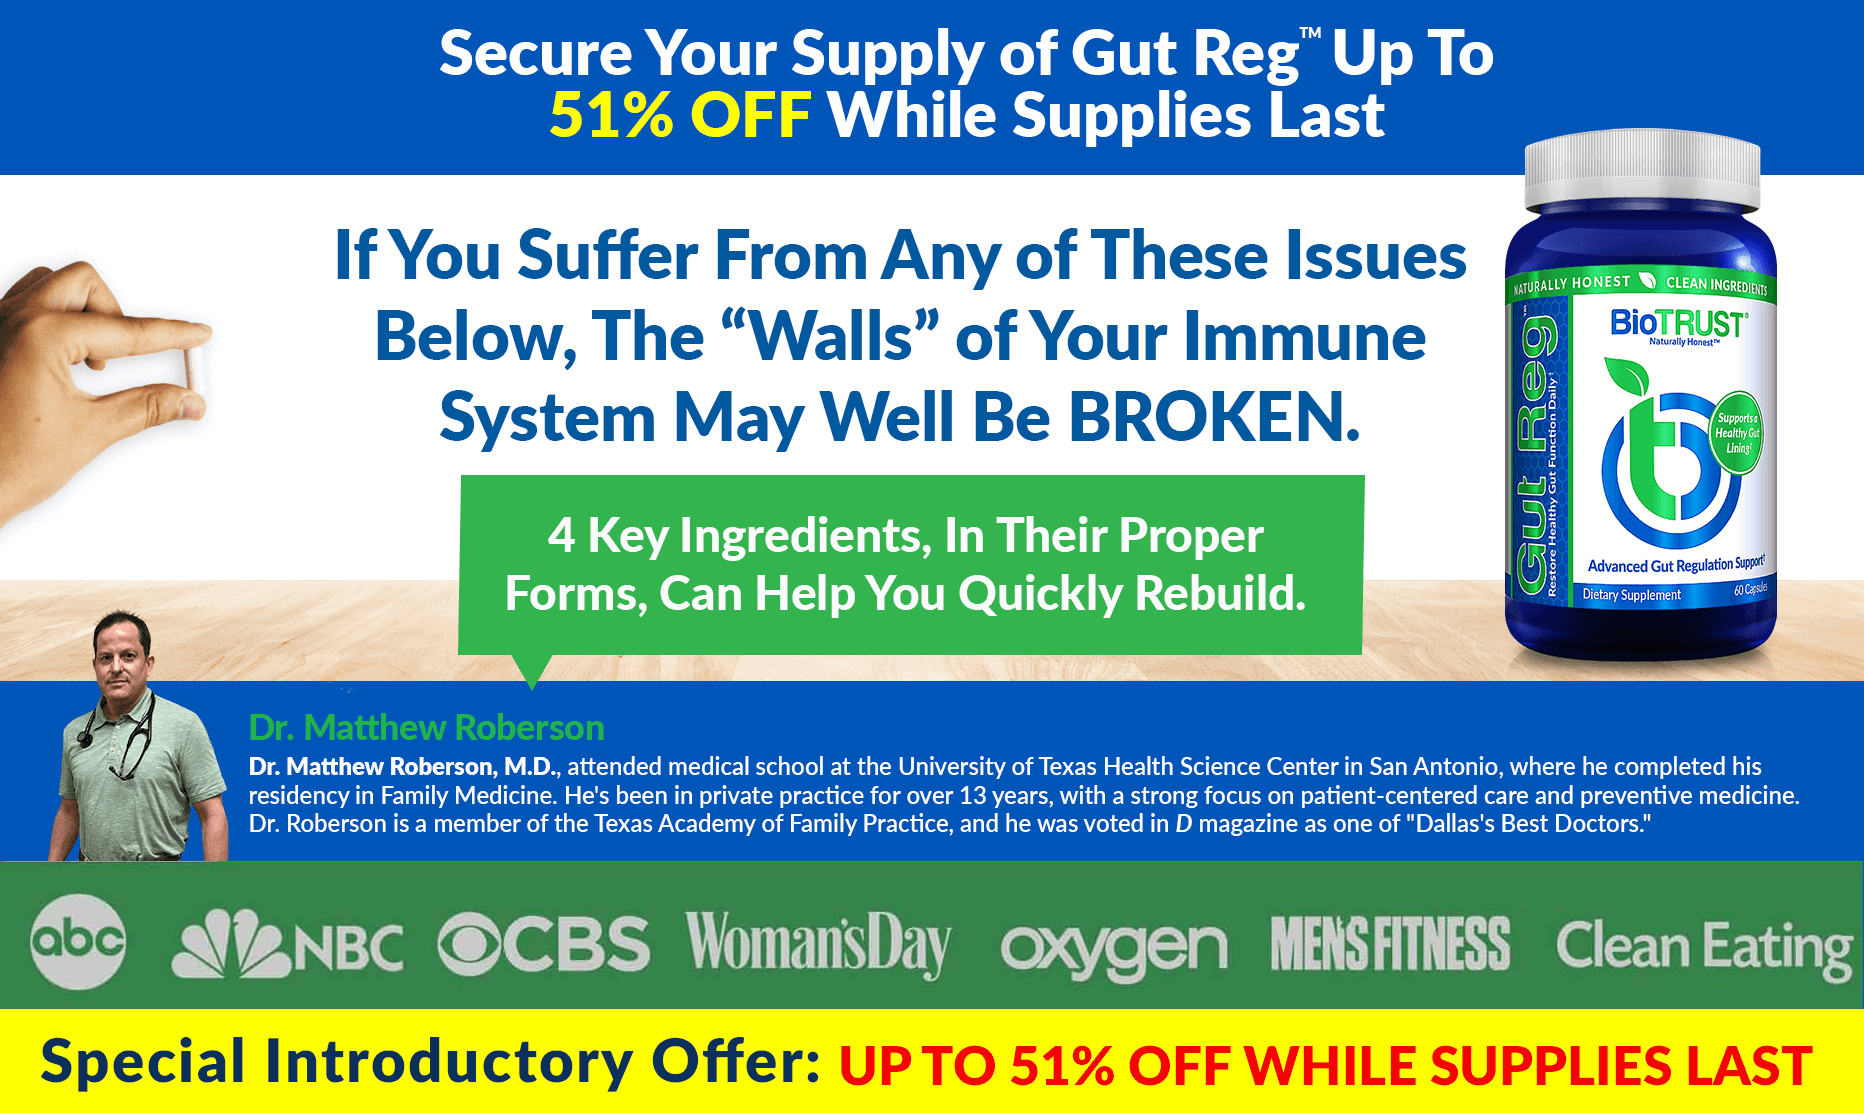 Secure Your Supply of Gut Reg